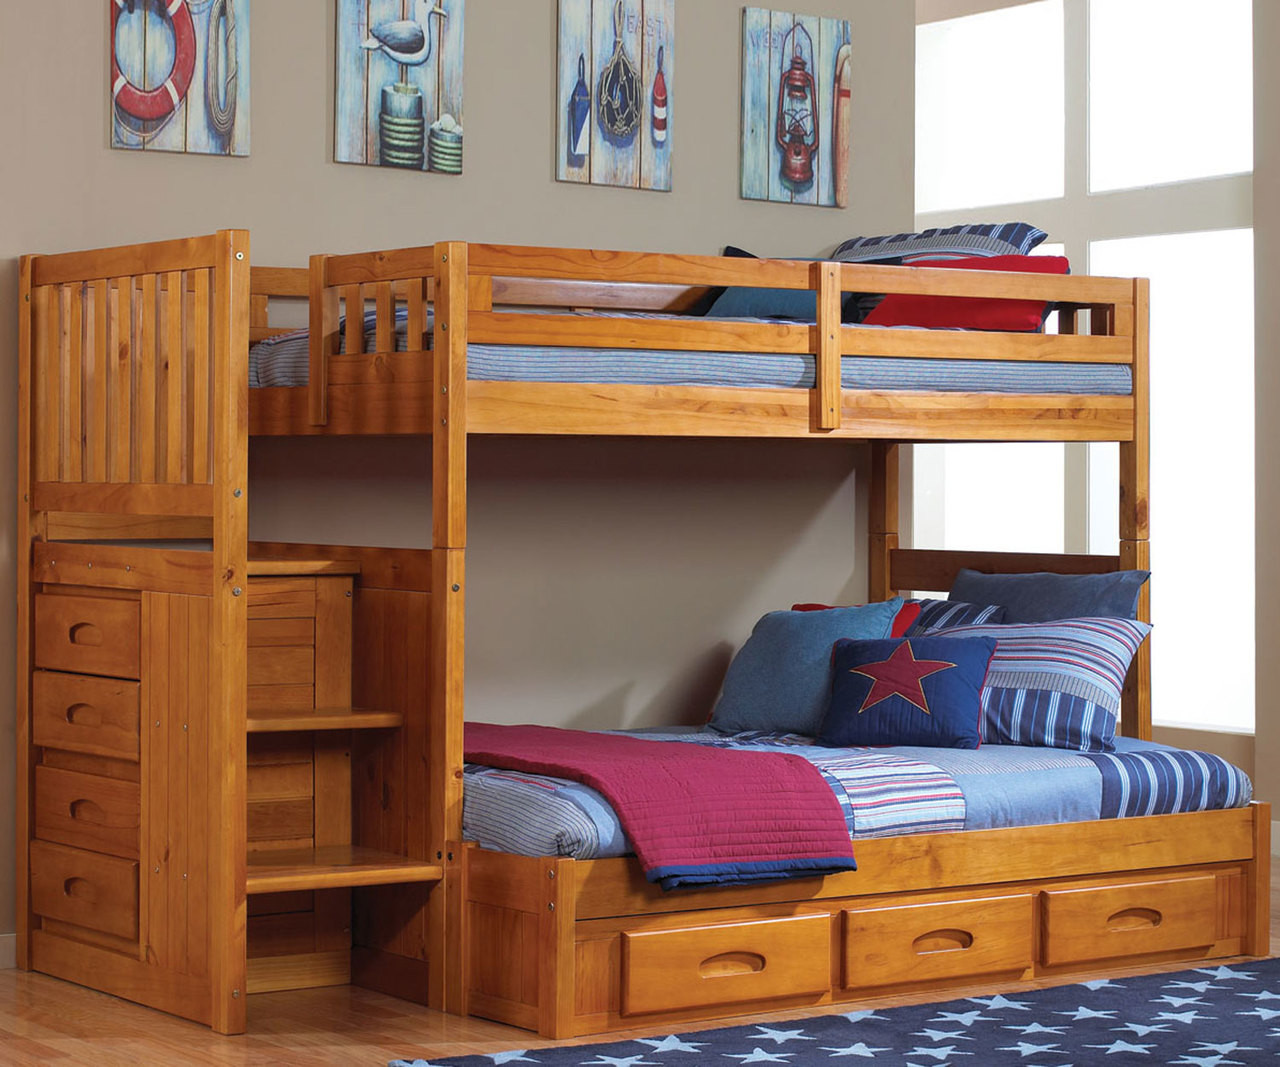 Bed Over Stair Box With Storage And Stairs: Buy Honey Collection Mission Kids Bunk Beds With Stairs